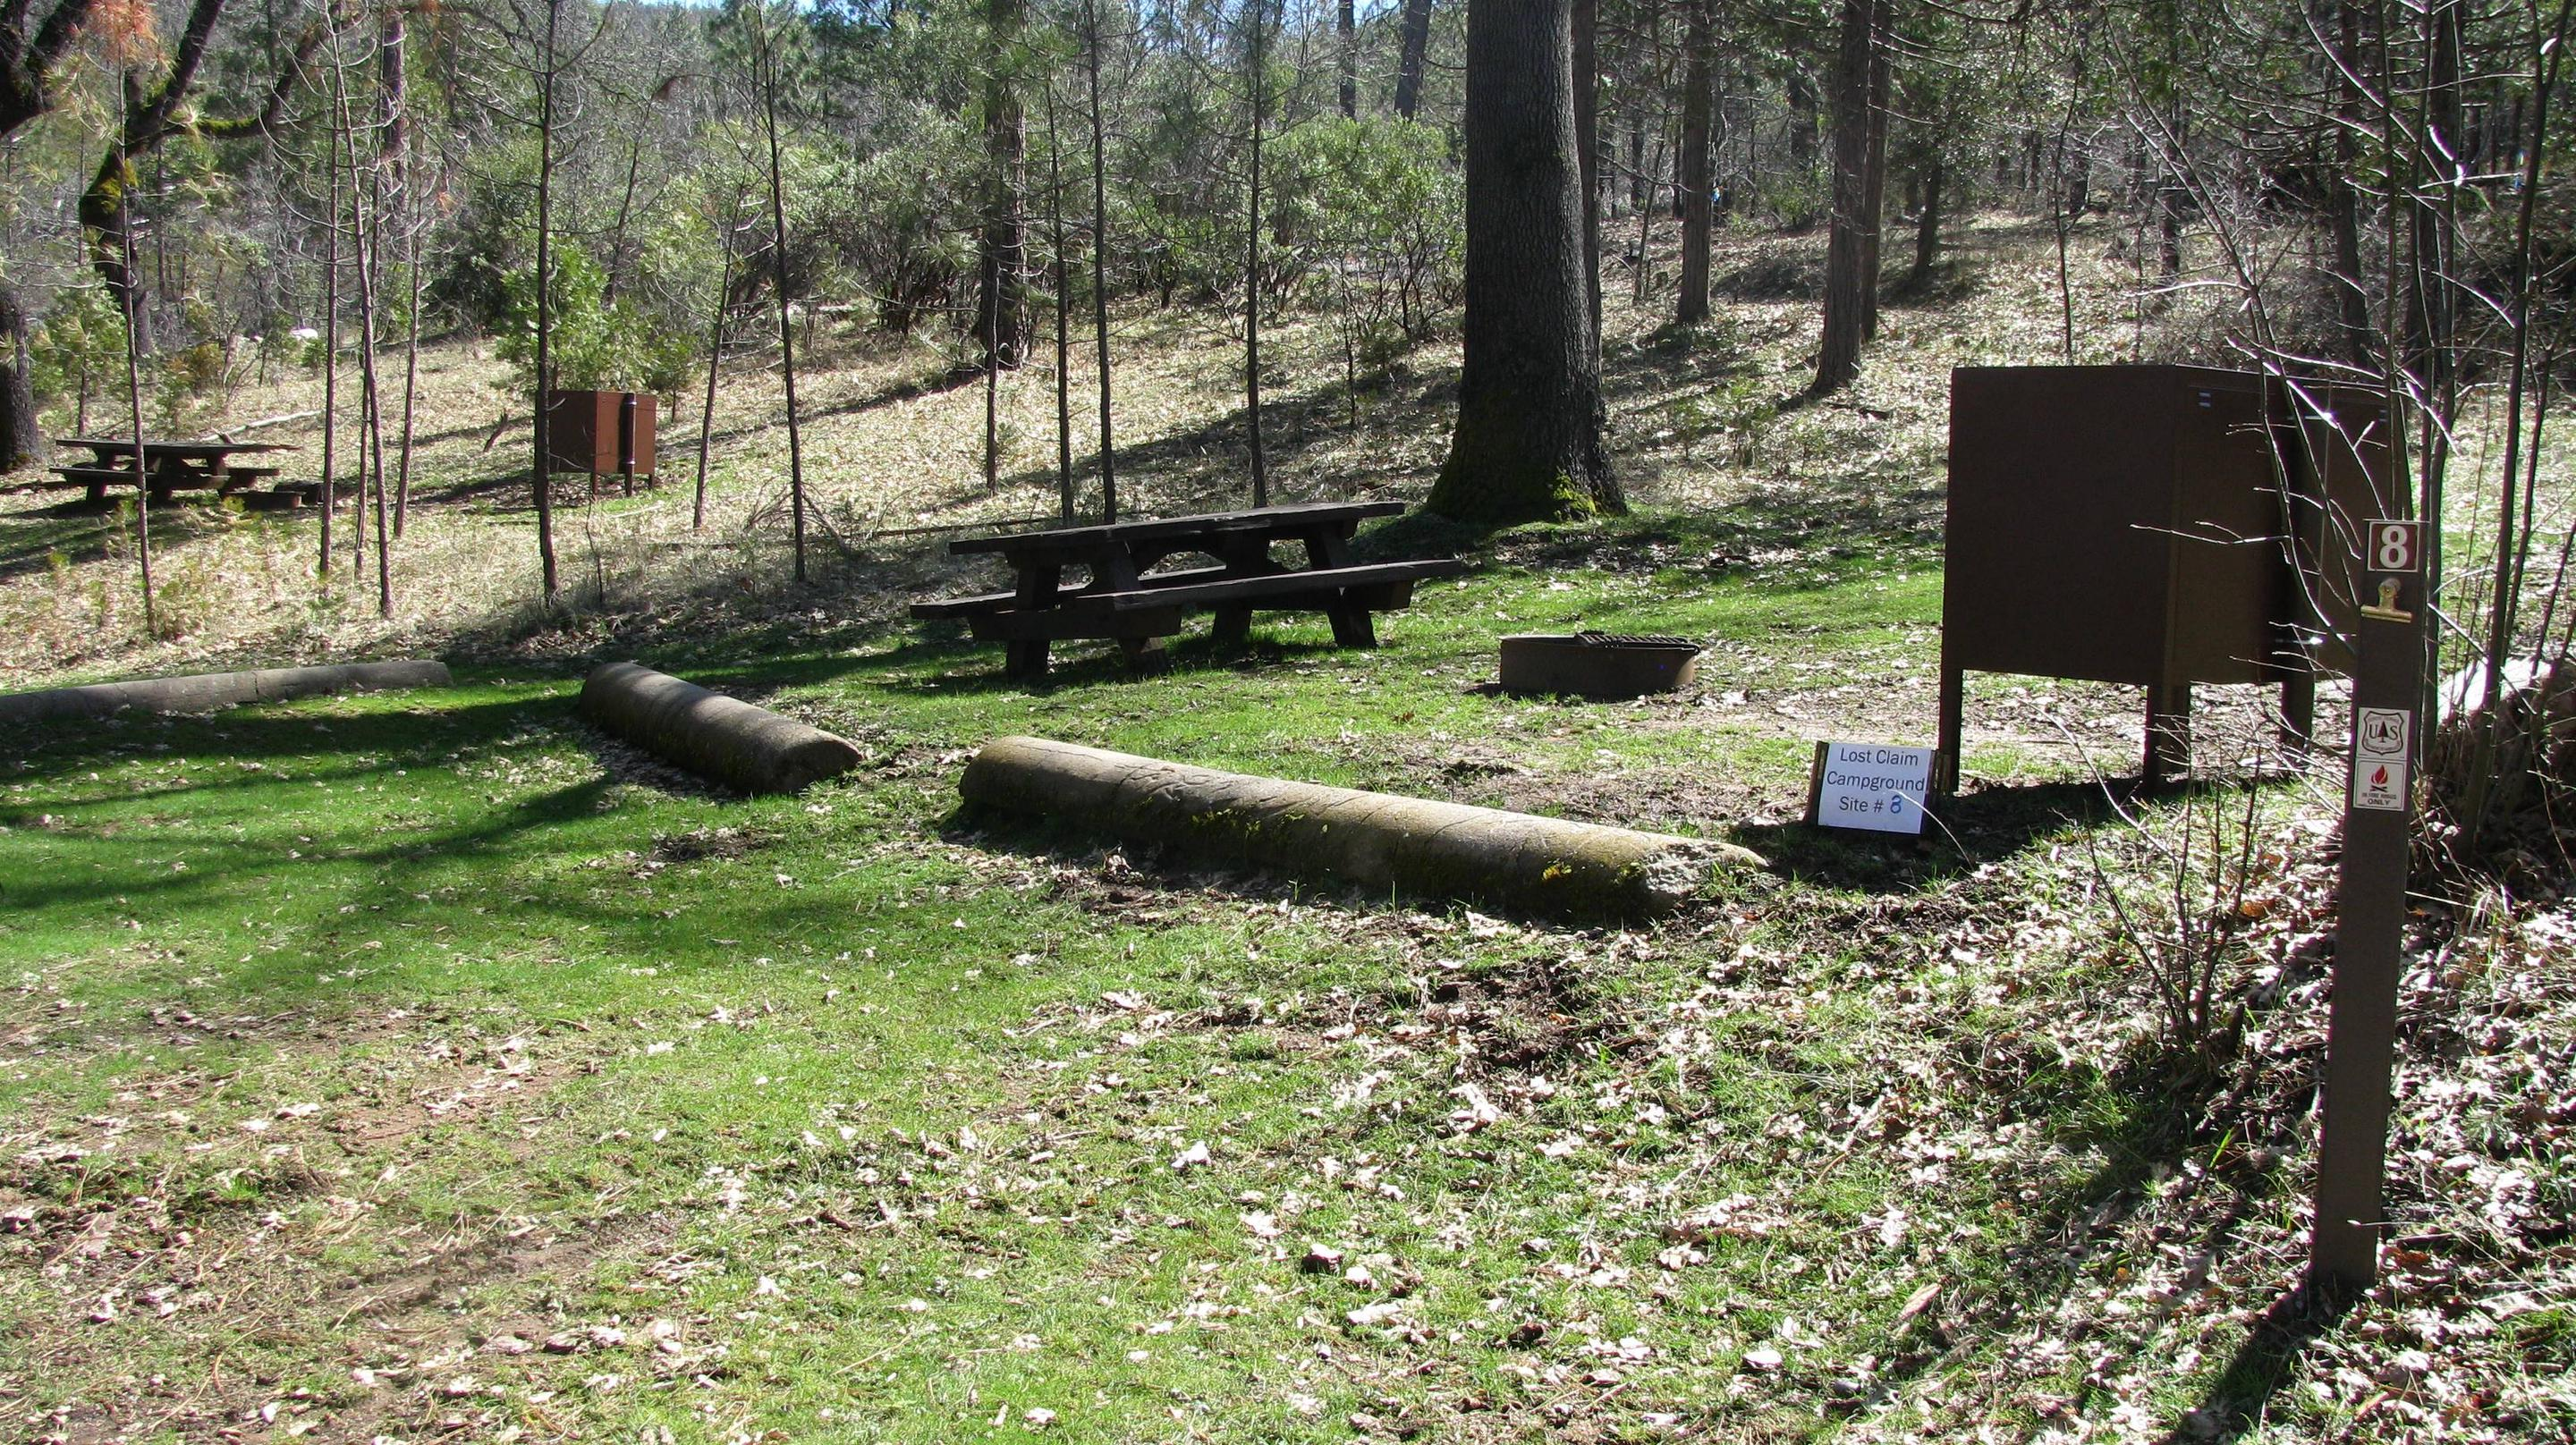 Native surface site with picnic table, fire ring and bear-proof food storage boxLost Claim Campground Site #8